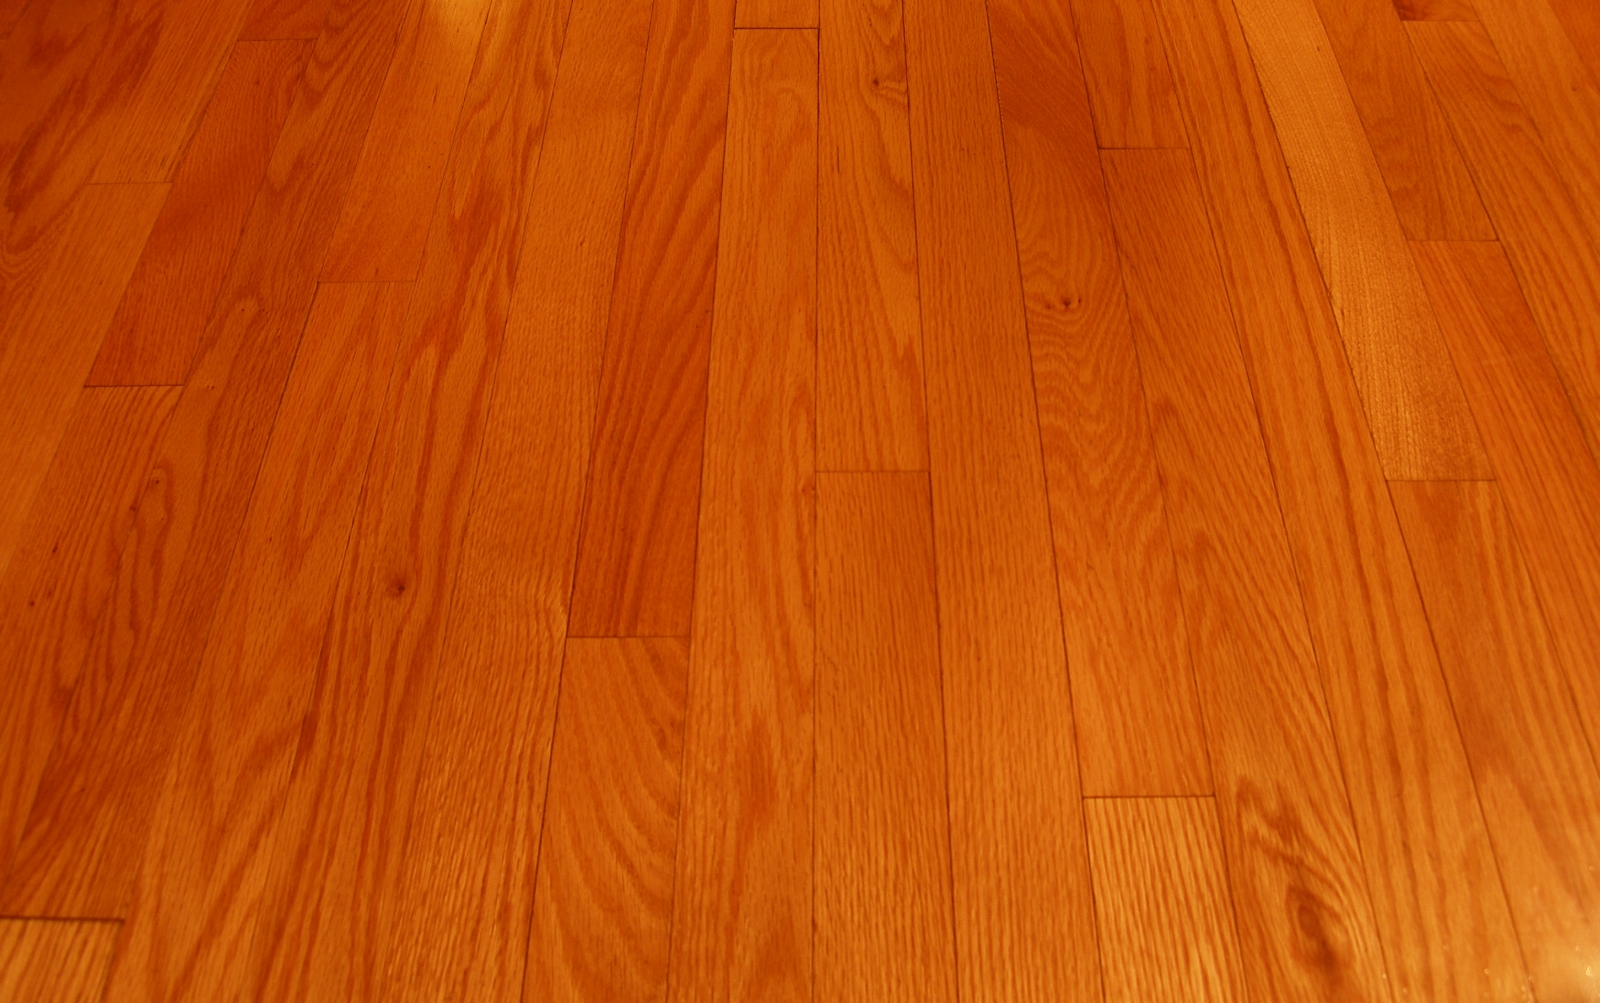 Unique wood floors choosing between solid vs engineered for At floor or on floor